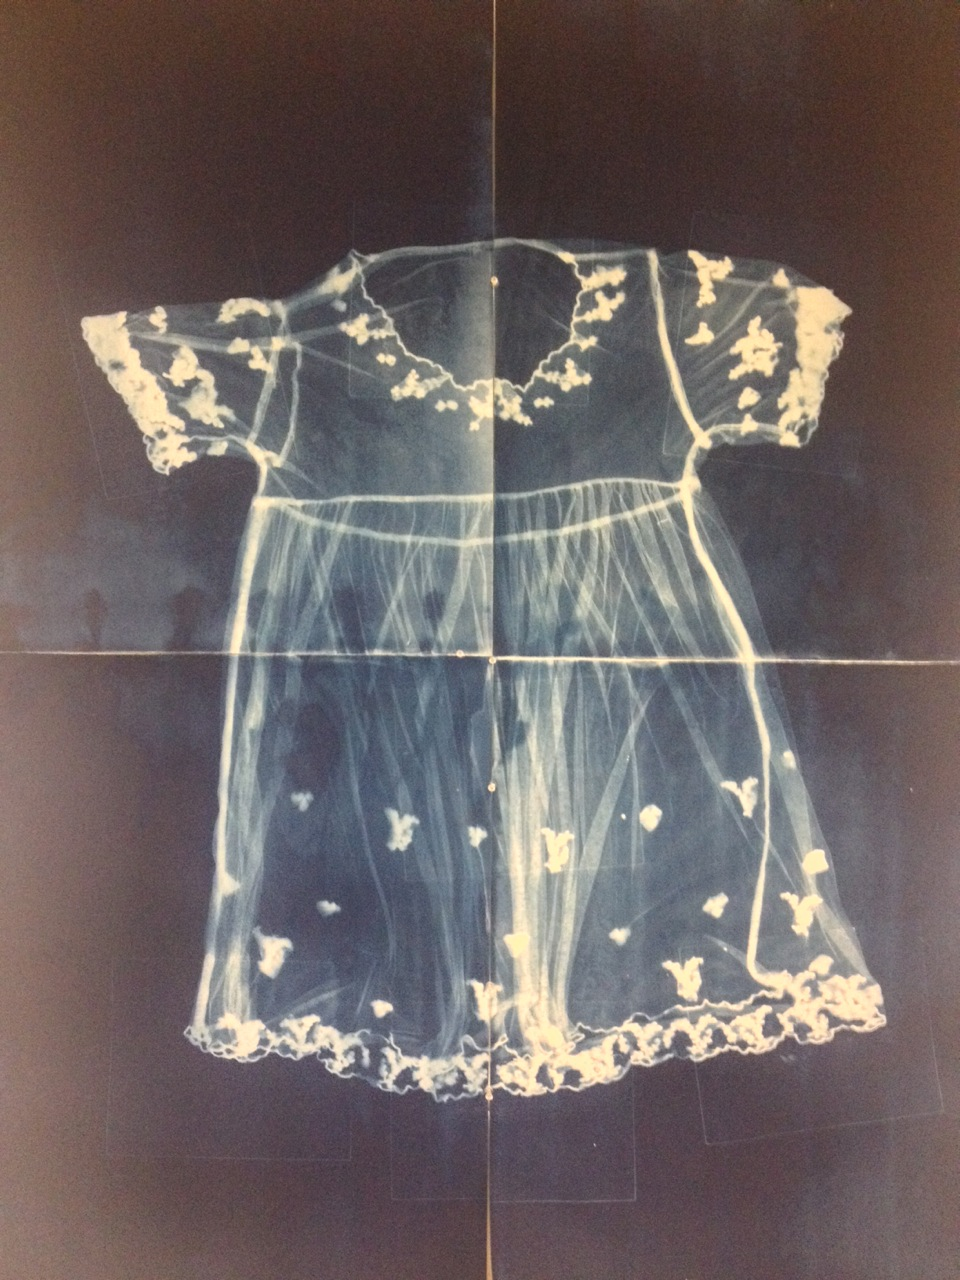 Mothers Dress (Four Parts) by J Gray Swartzel - Cyanotype - 44 x 60 - framed: 2014